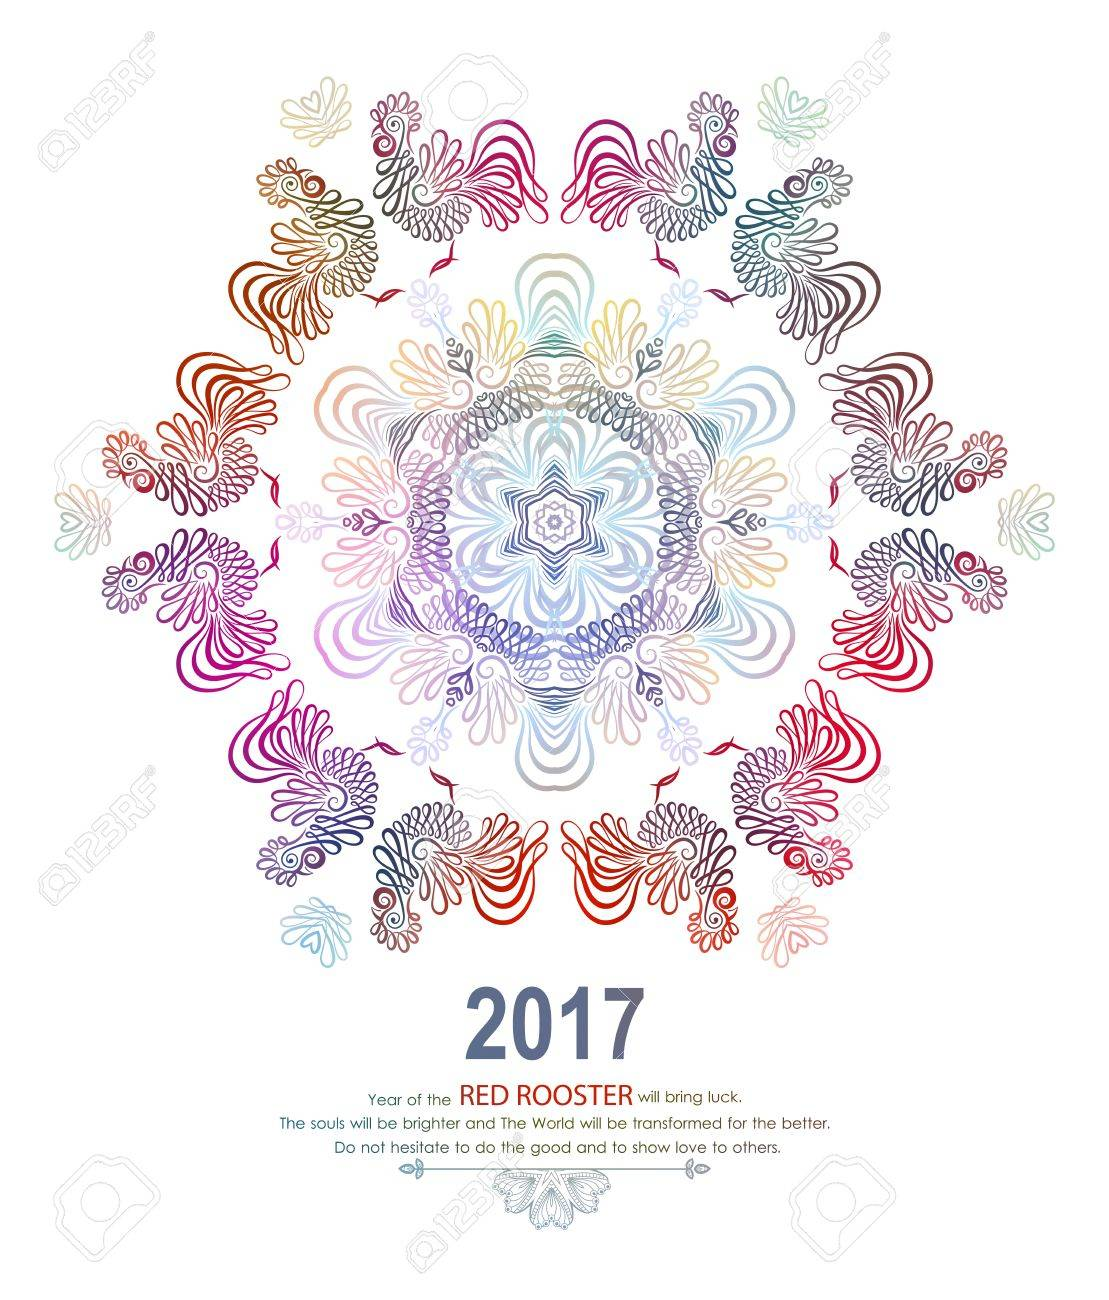 Happy new year design with wishes rooster symbol 2017 in chinese happy new year design with wishes rooster symbol 2017 in chinese calendar mandala biocorpaavc